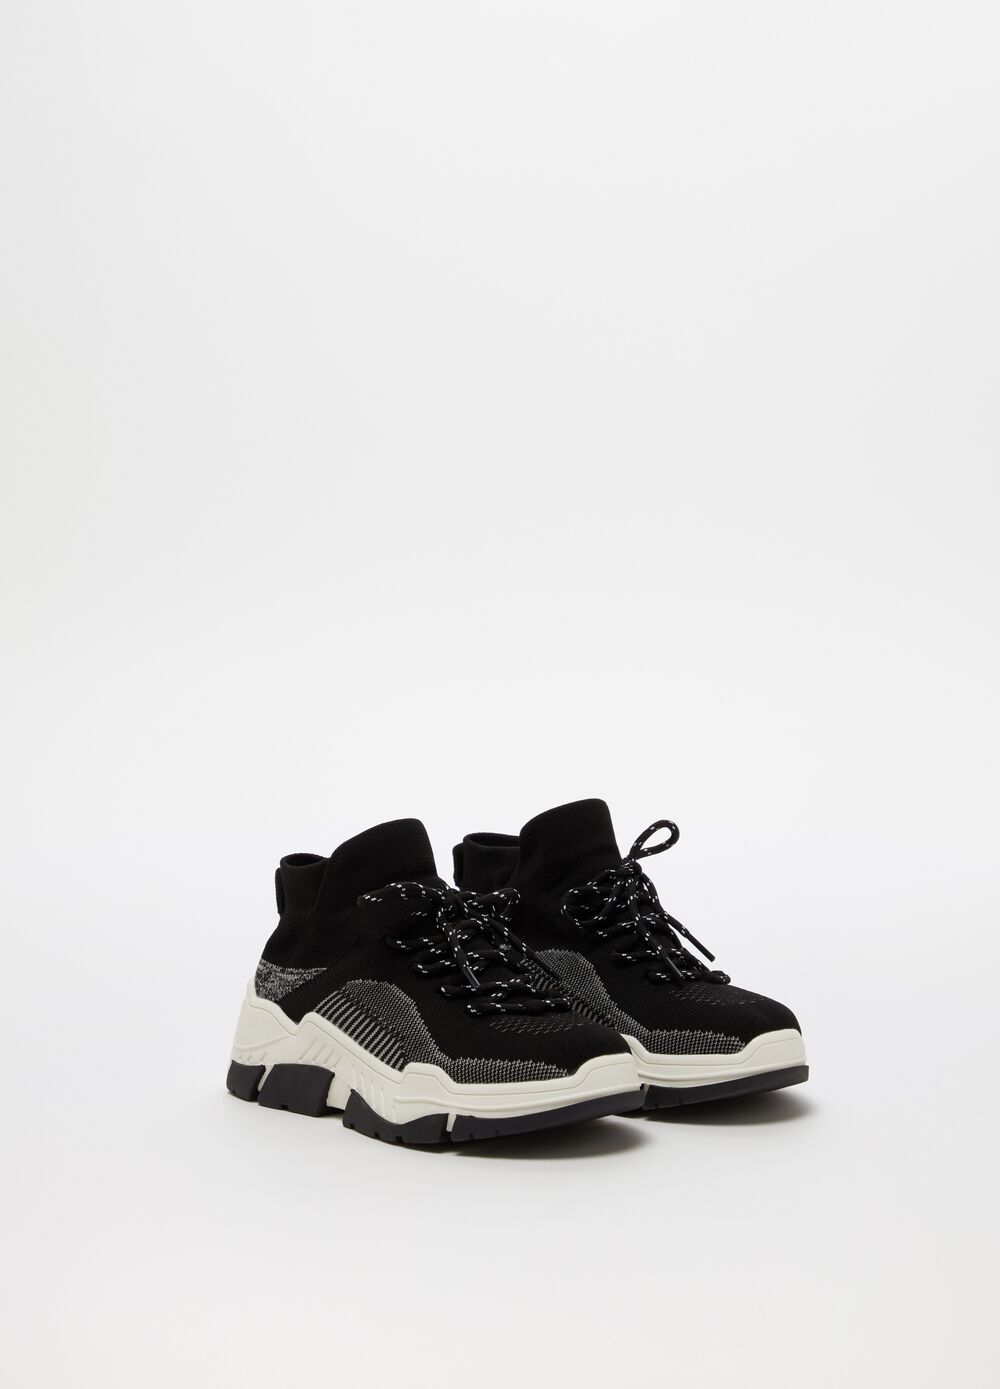 Chunky sneakers with platform sole